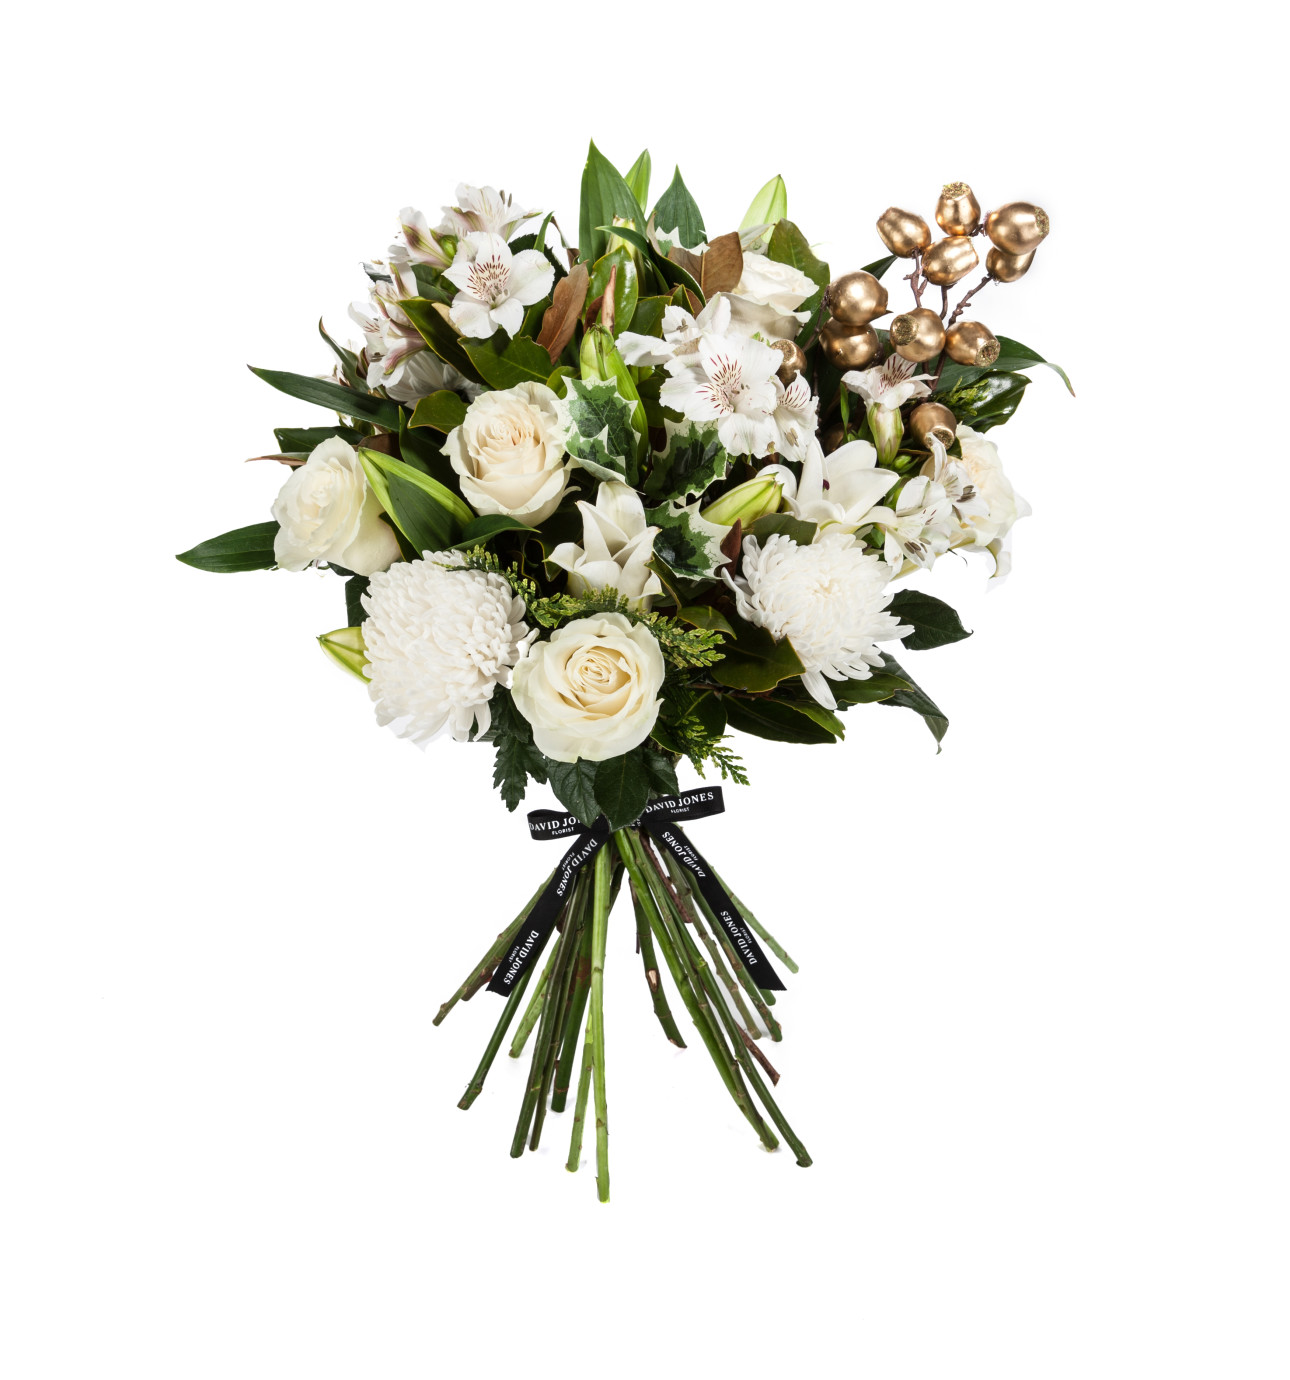 Brisbane flower delivery cheap choice image flower wallpaper hd cheap flowers delivered brisbane choice image flower wallpaper hd send flowers brisbane cheap gallery flower wallpaper izmirmasajfo